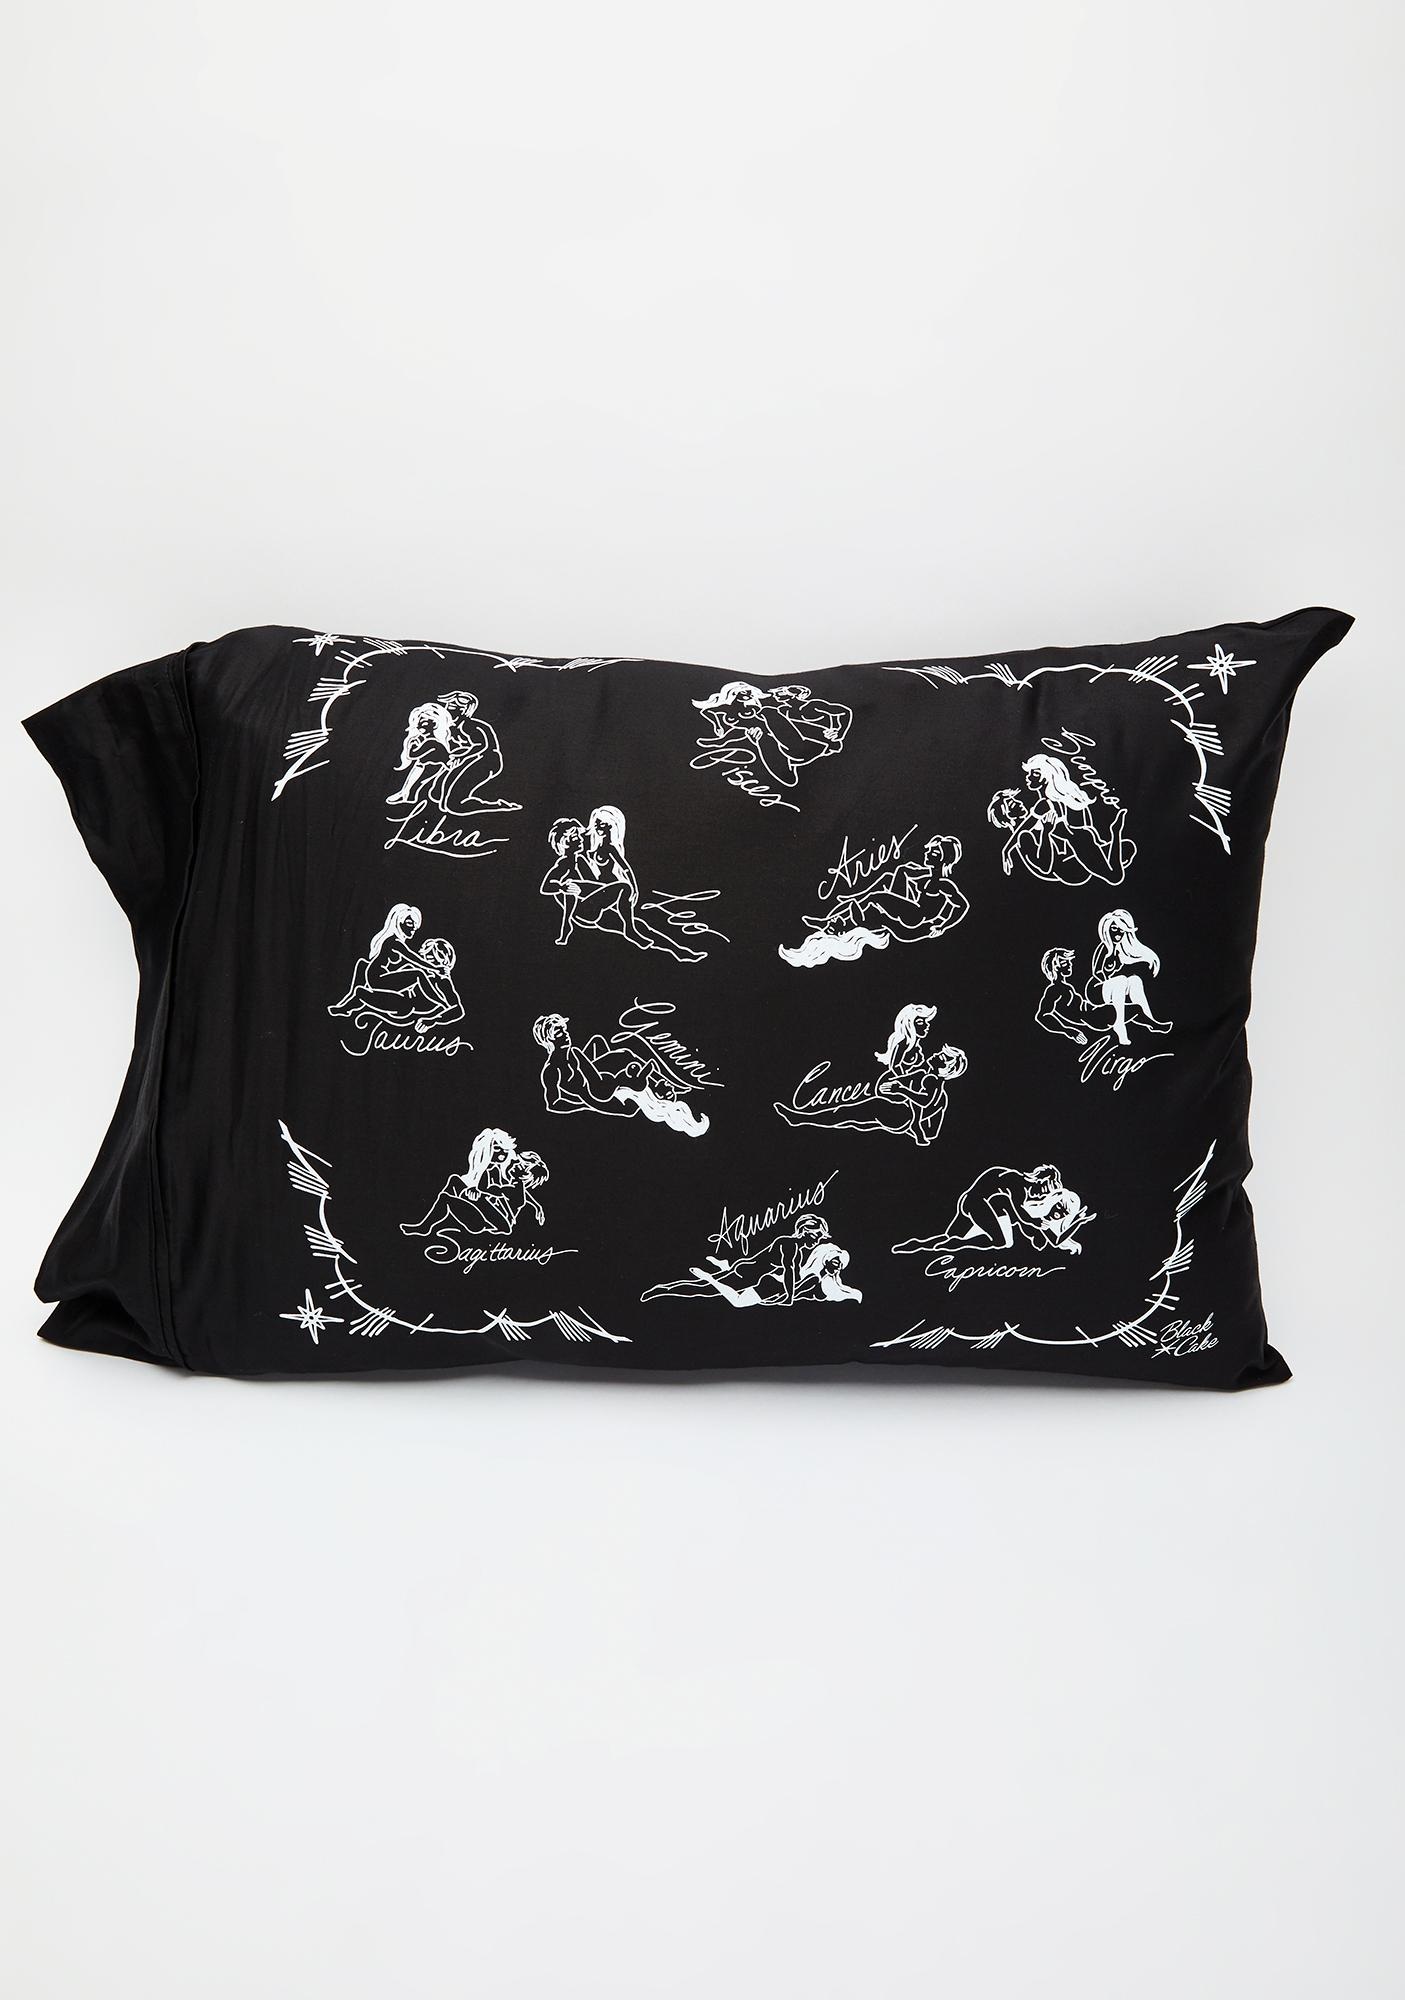 Black Cake Cosmic Love Pillowcase Set